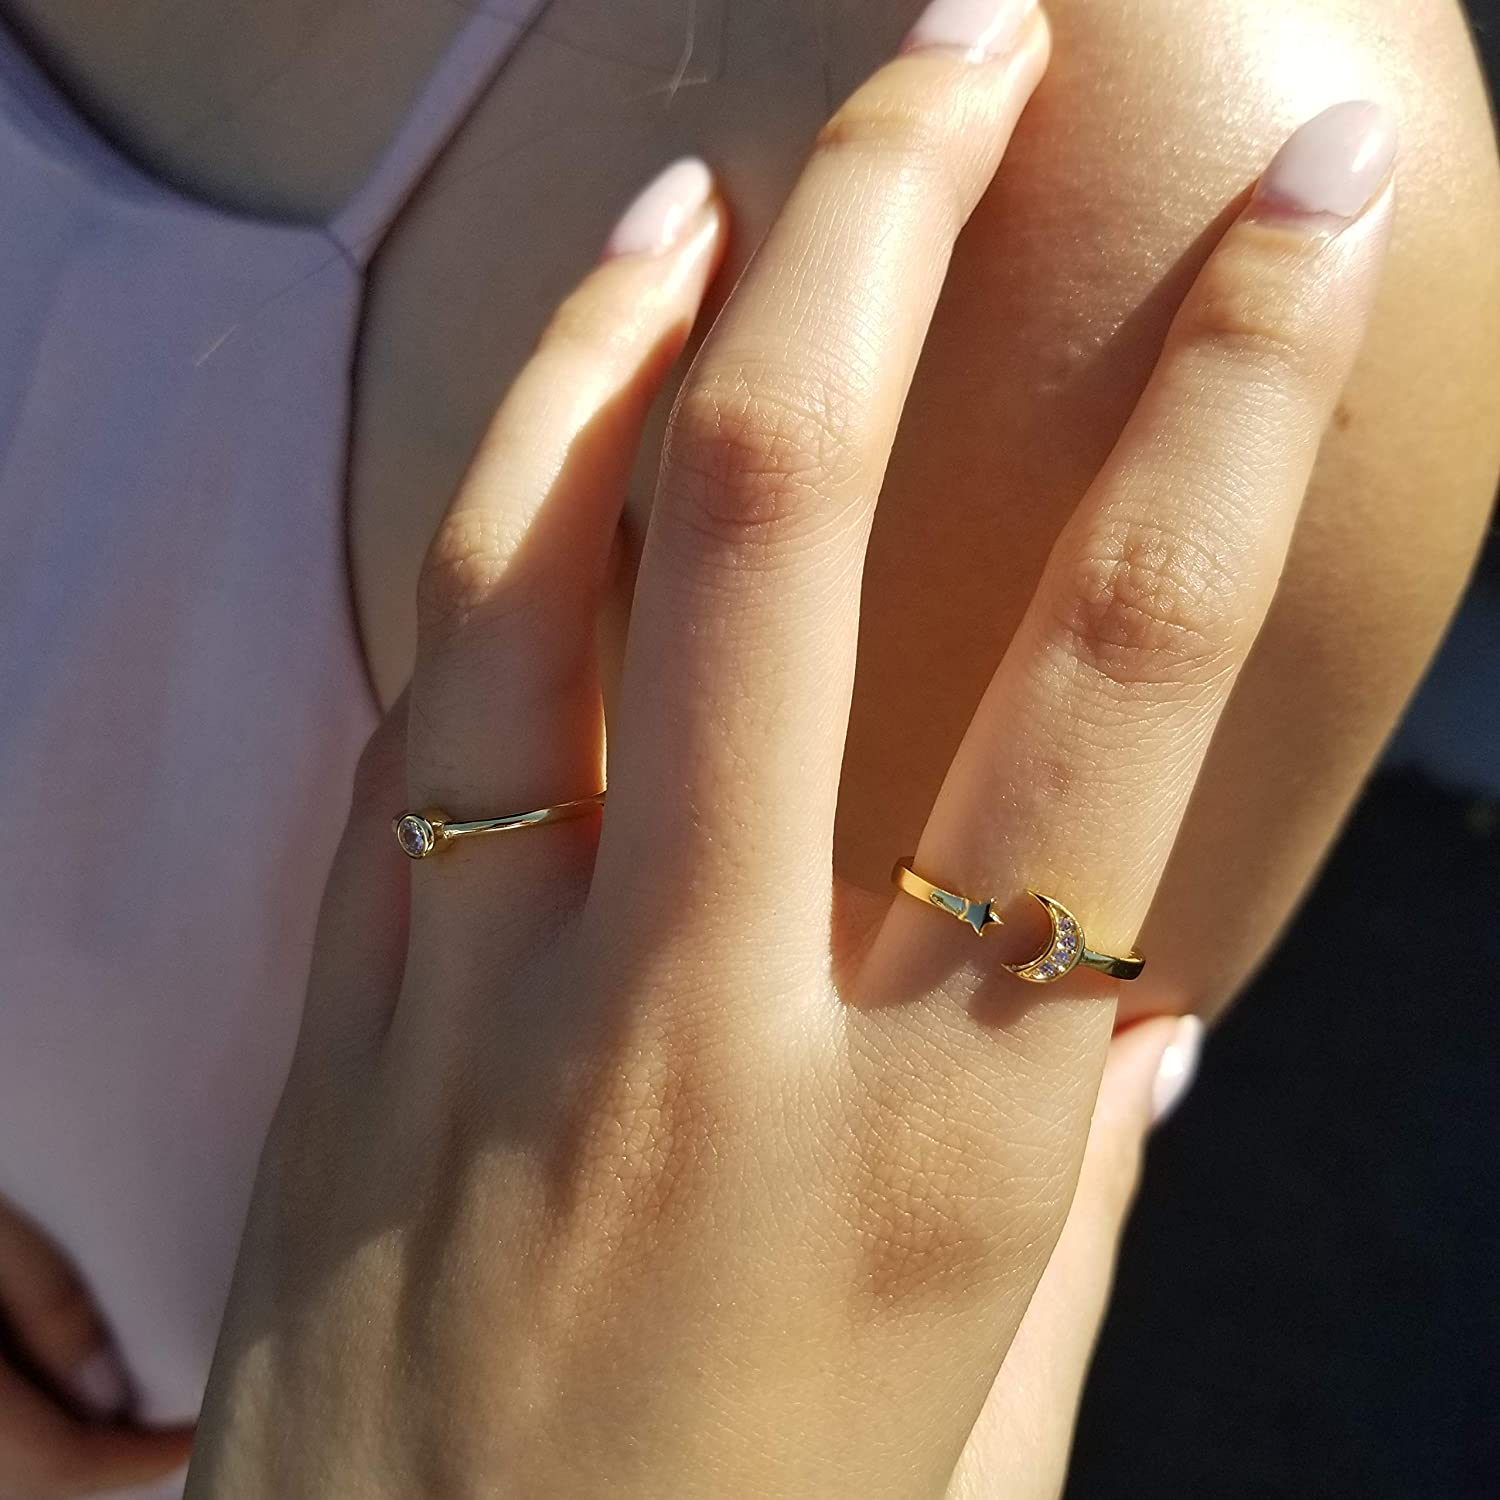 Gold ring Silver ring opal ring Minimalist ring moon ring Stackable ring Tiny ring boho ring Delicate ring Dainty ring simple ring